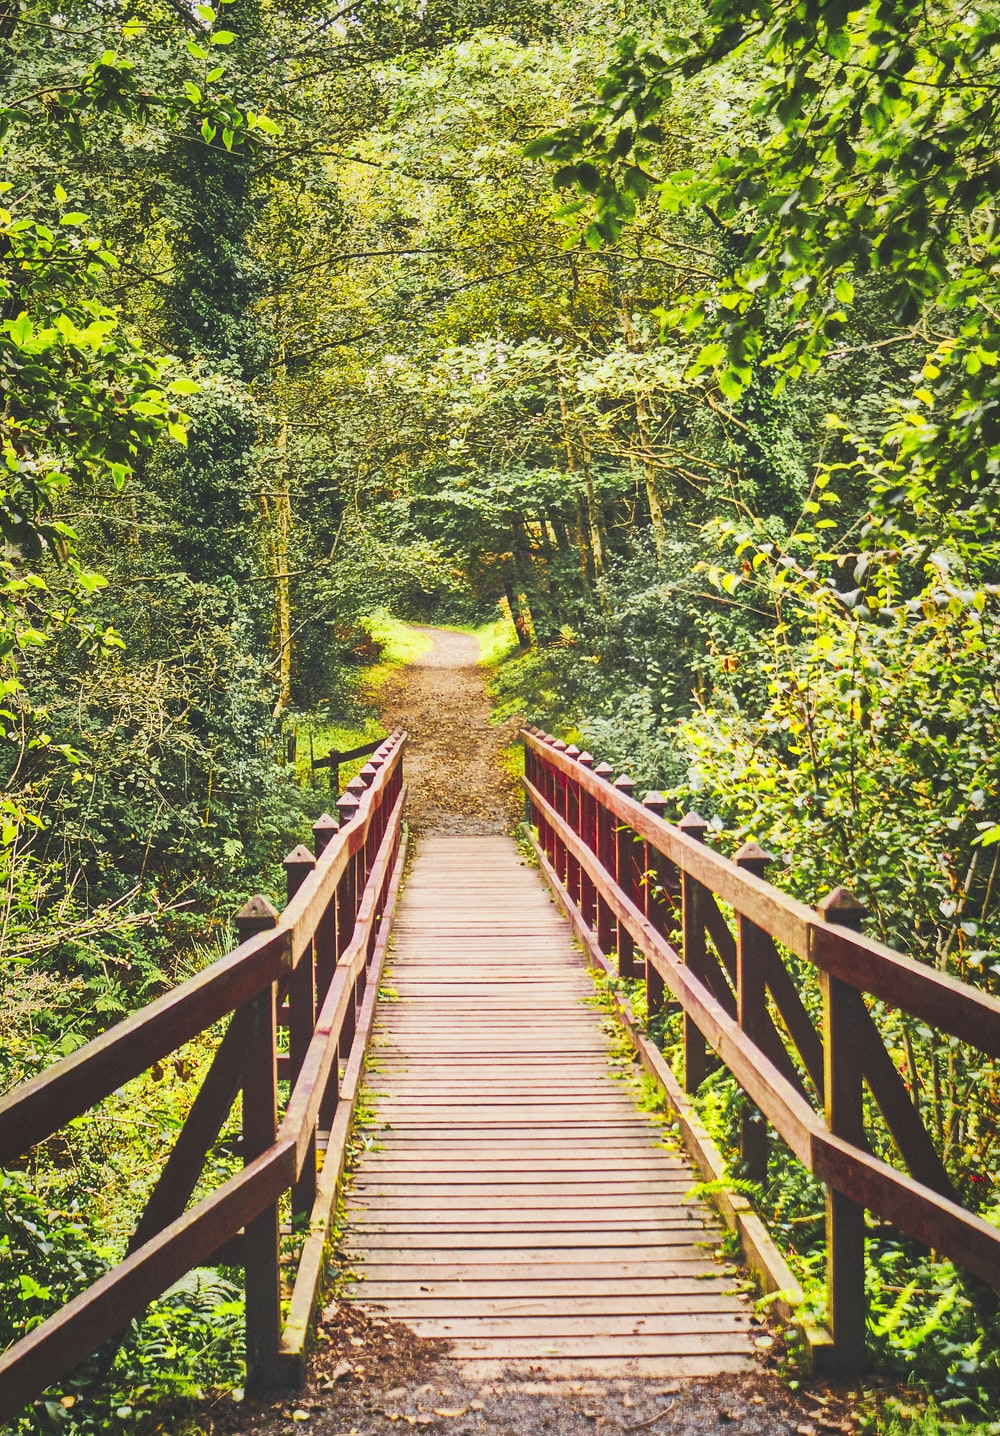 brown wooden bridge in the middle of green trees